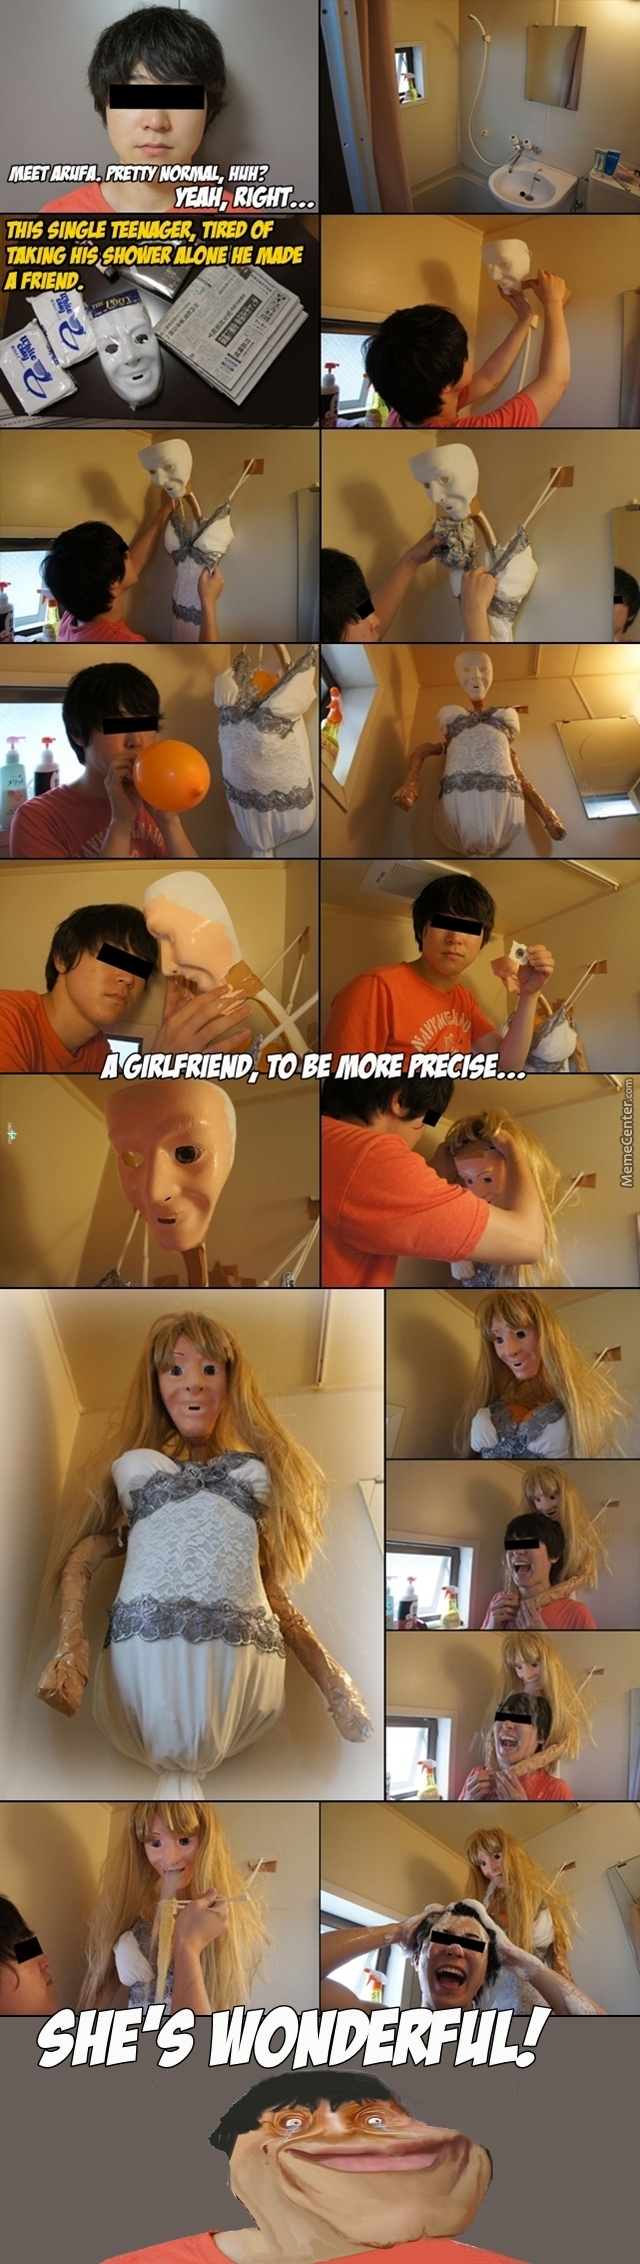 Forever Alone Level: Creepy As F*ck